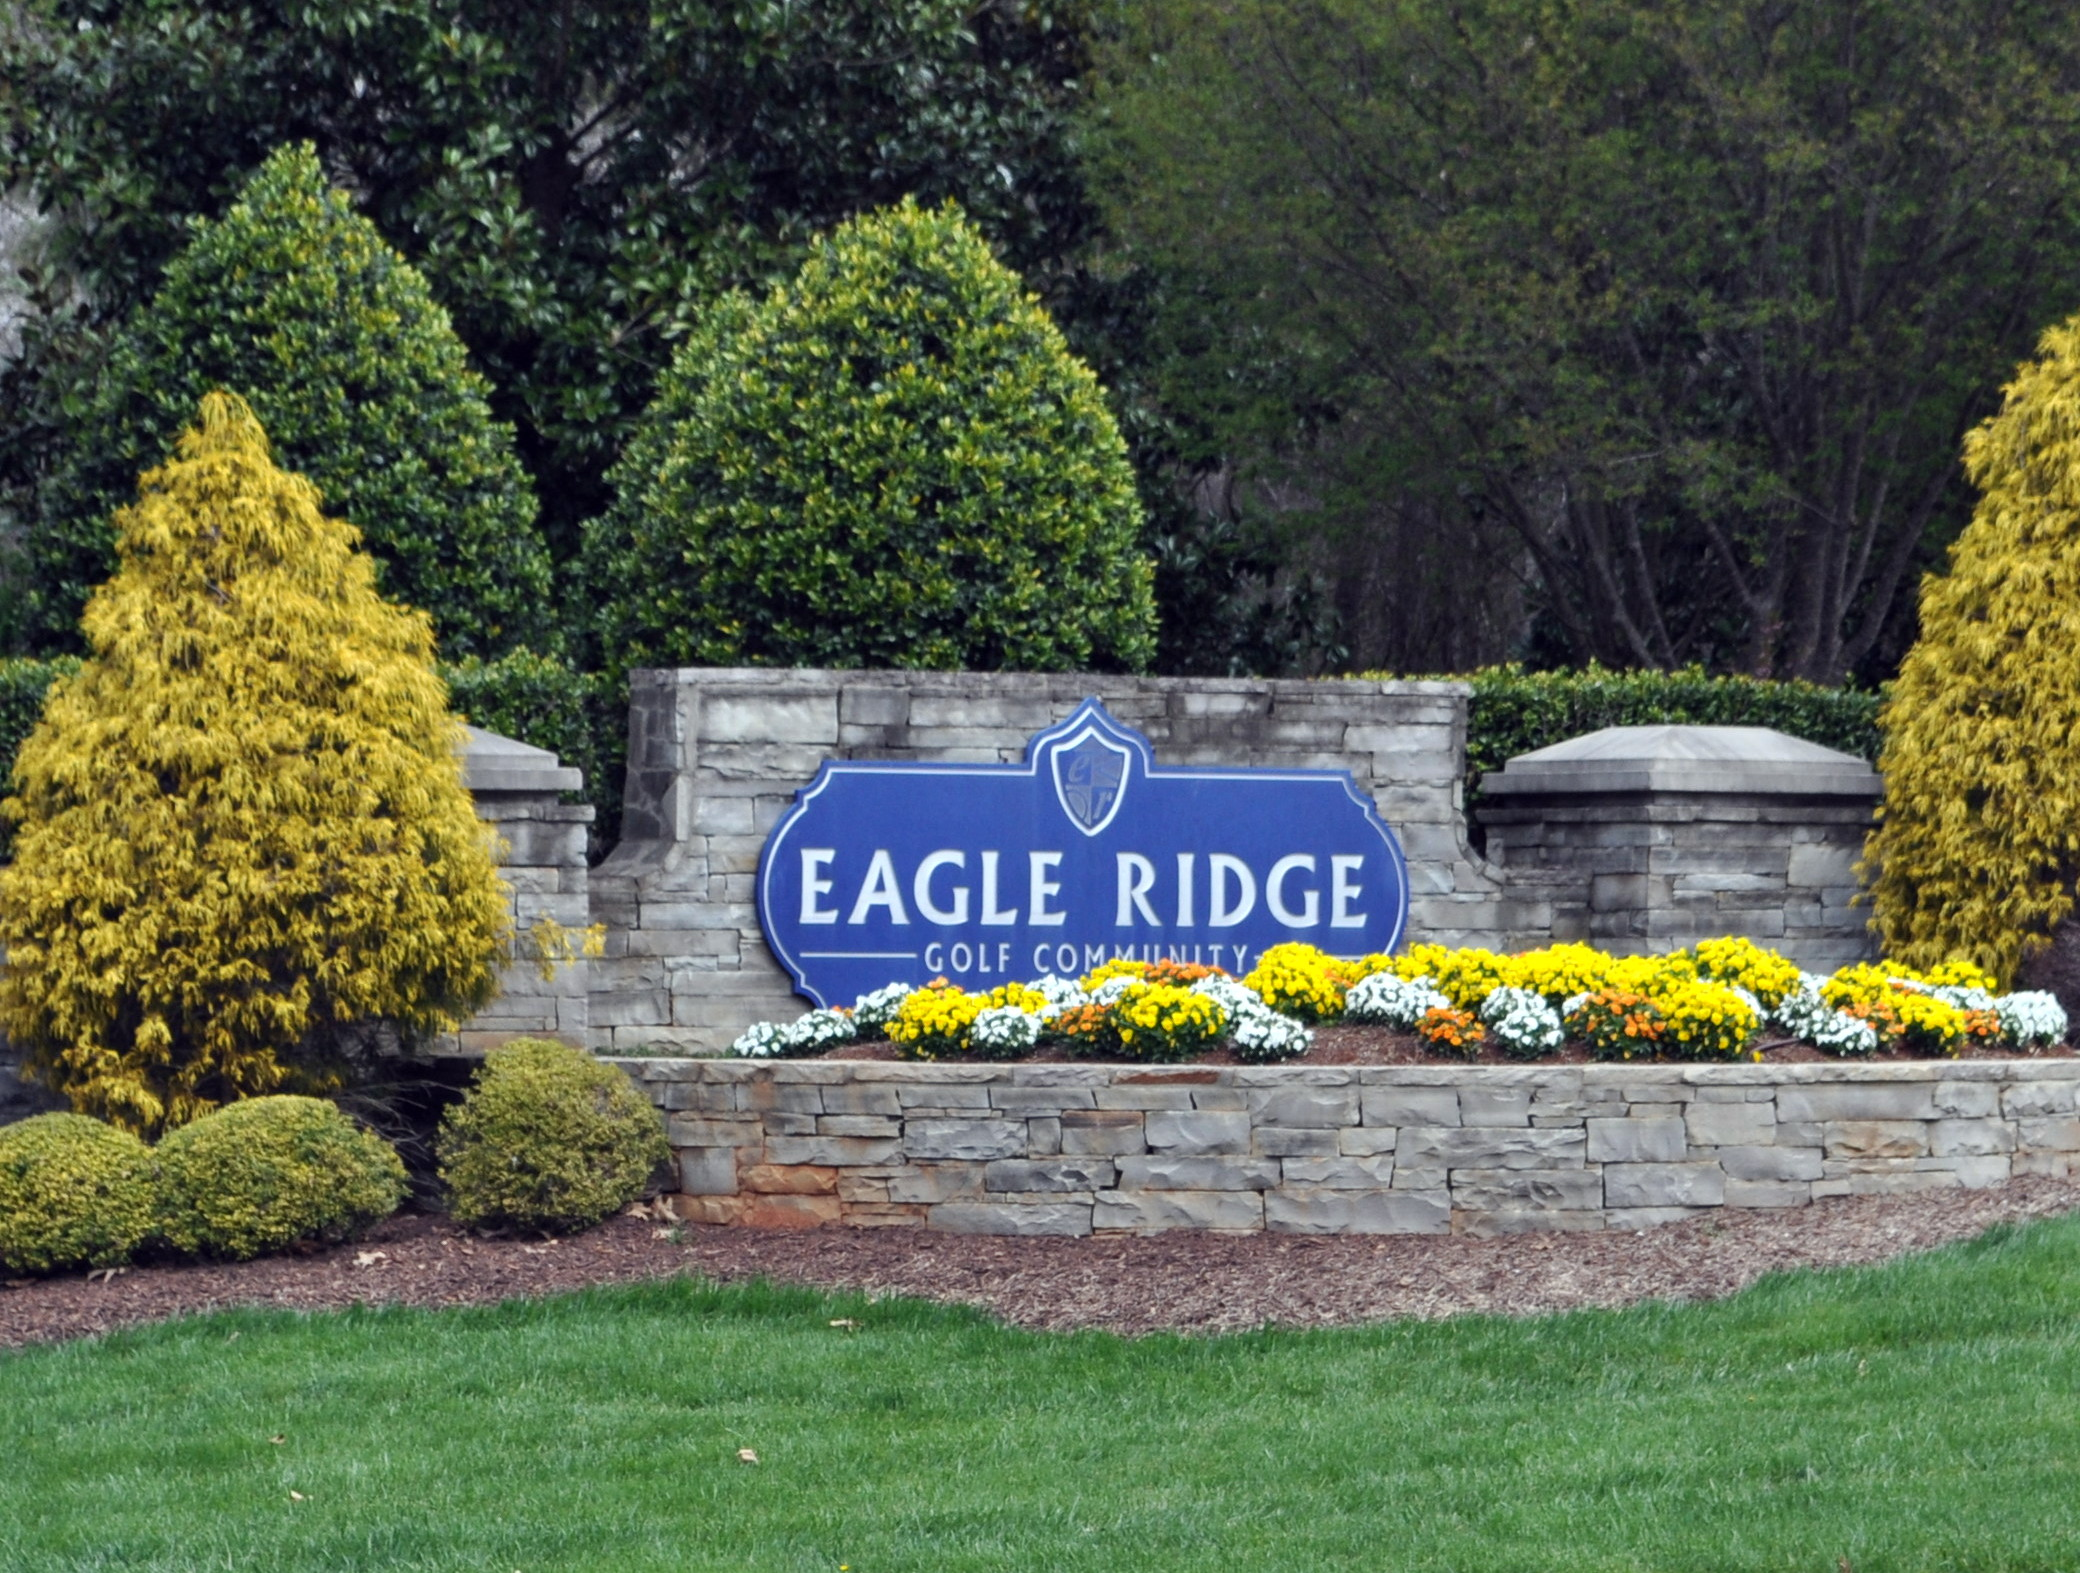 Eagle Ridge Golf Course Homes For Sale – March Update